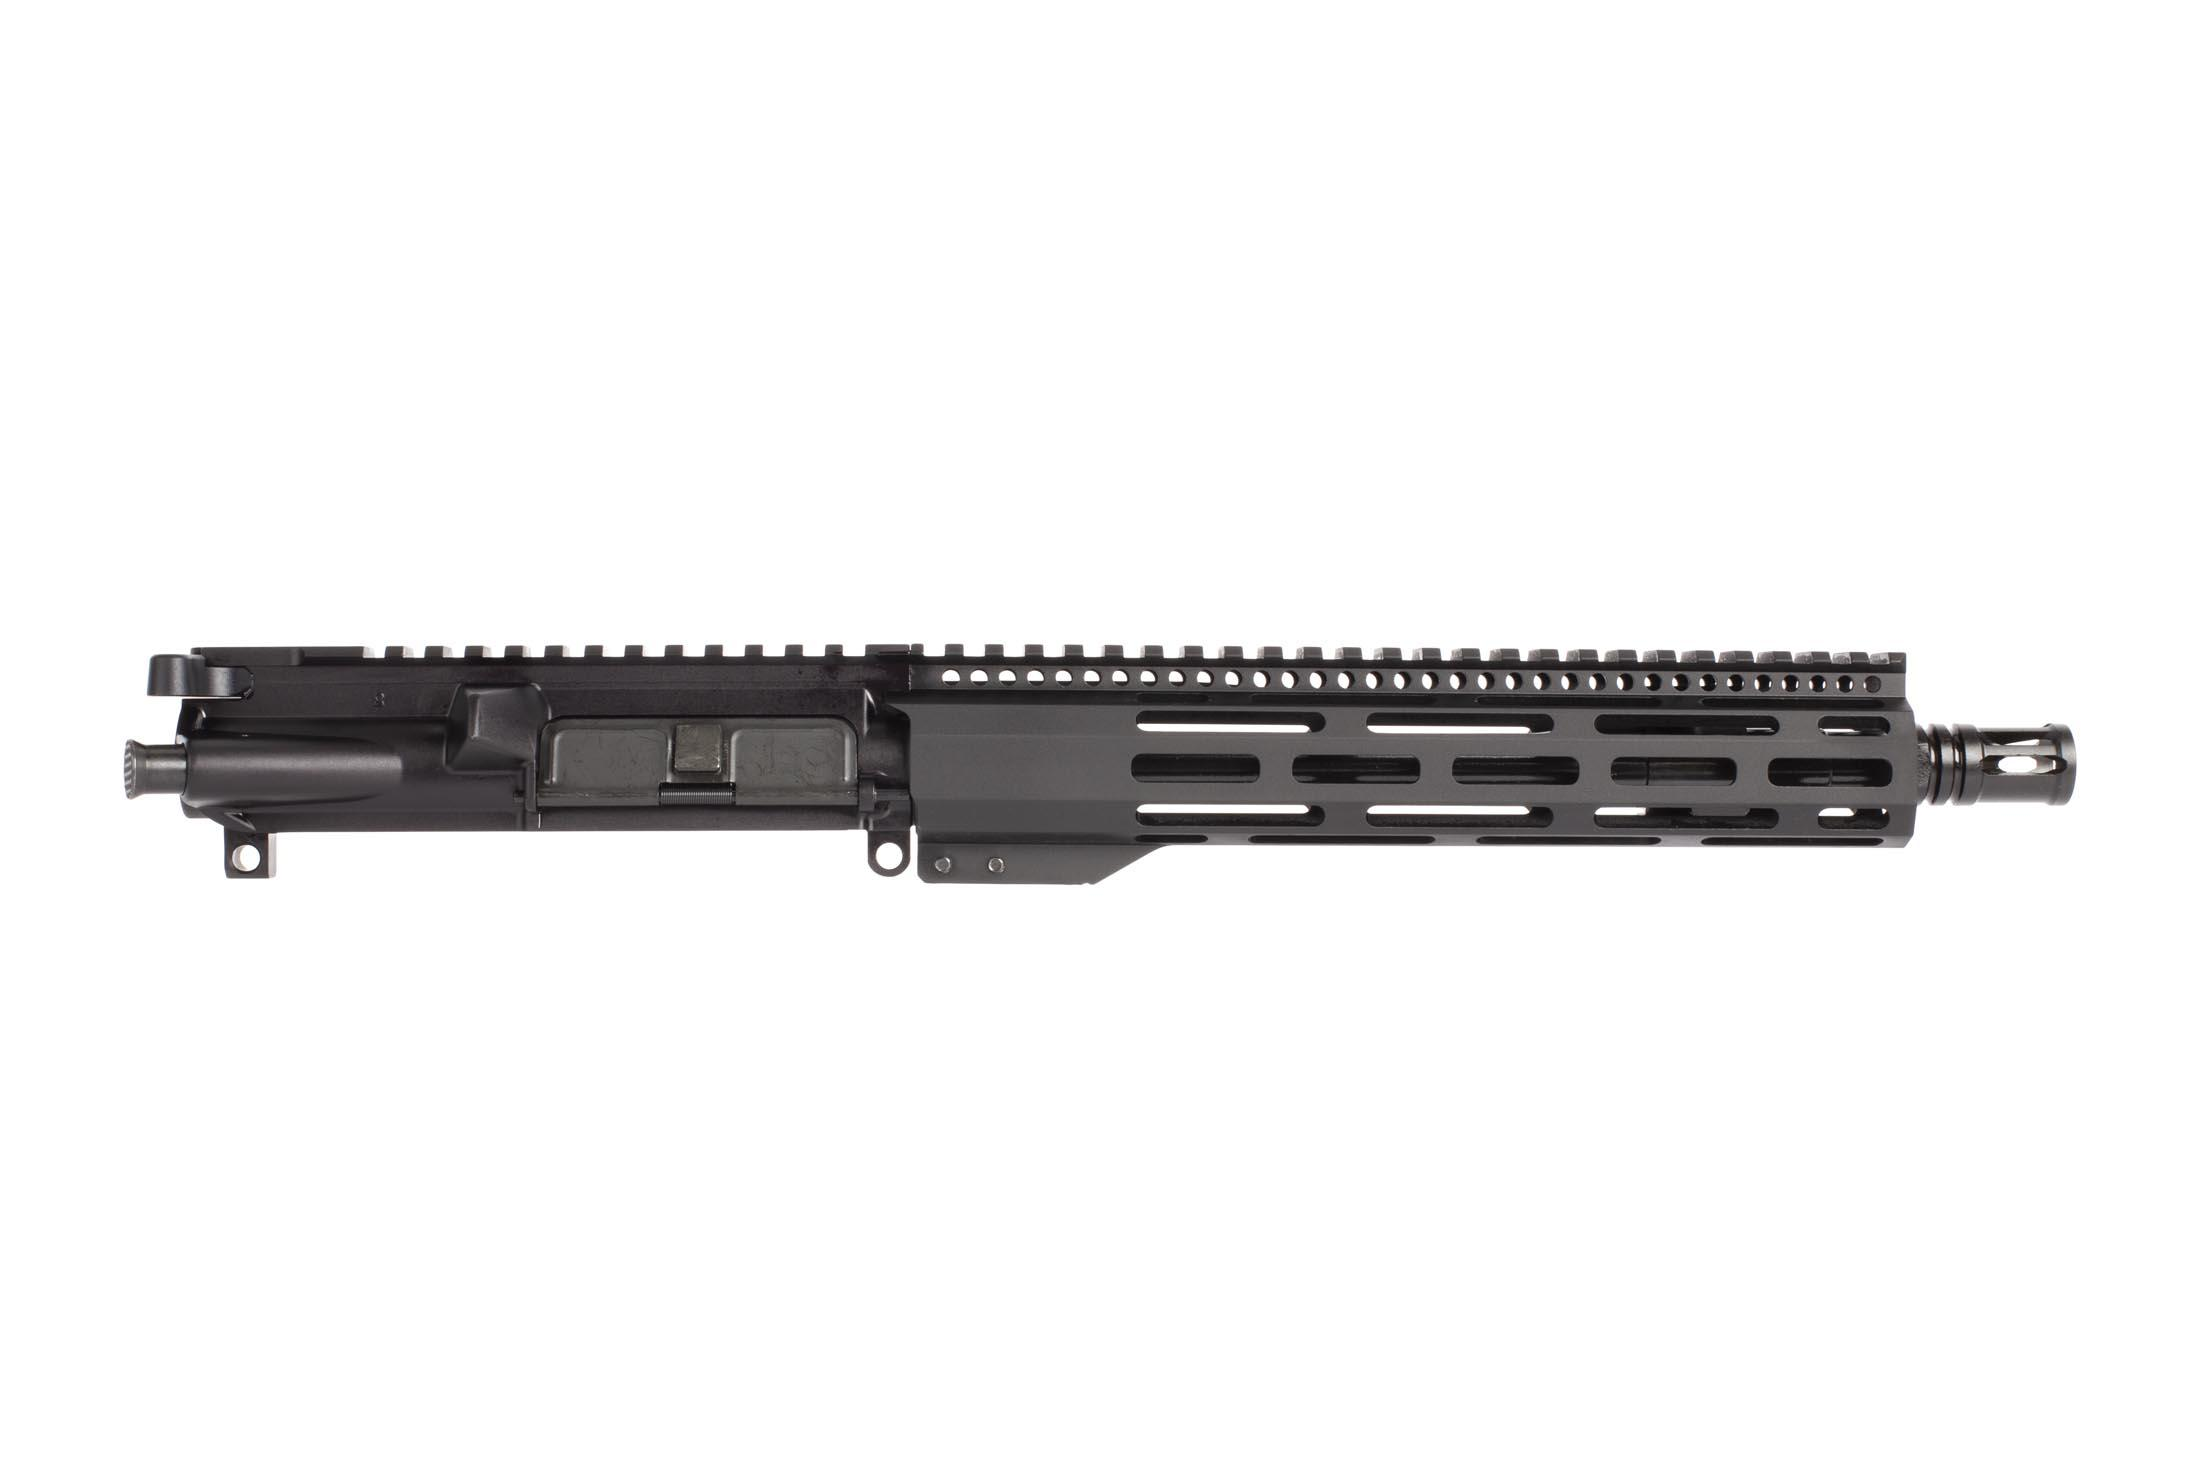 Radical Firearms 10.5in complete AR-15 pistol upper in 5.56 NATO is threaded 1/2x28 with an effective A2 flash hider.